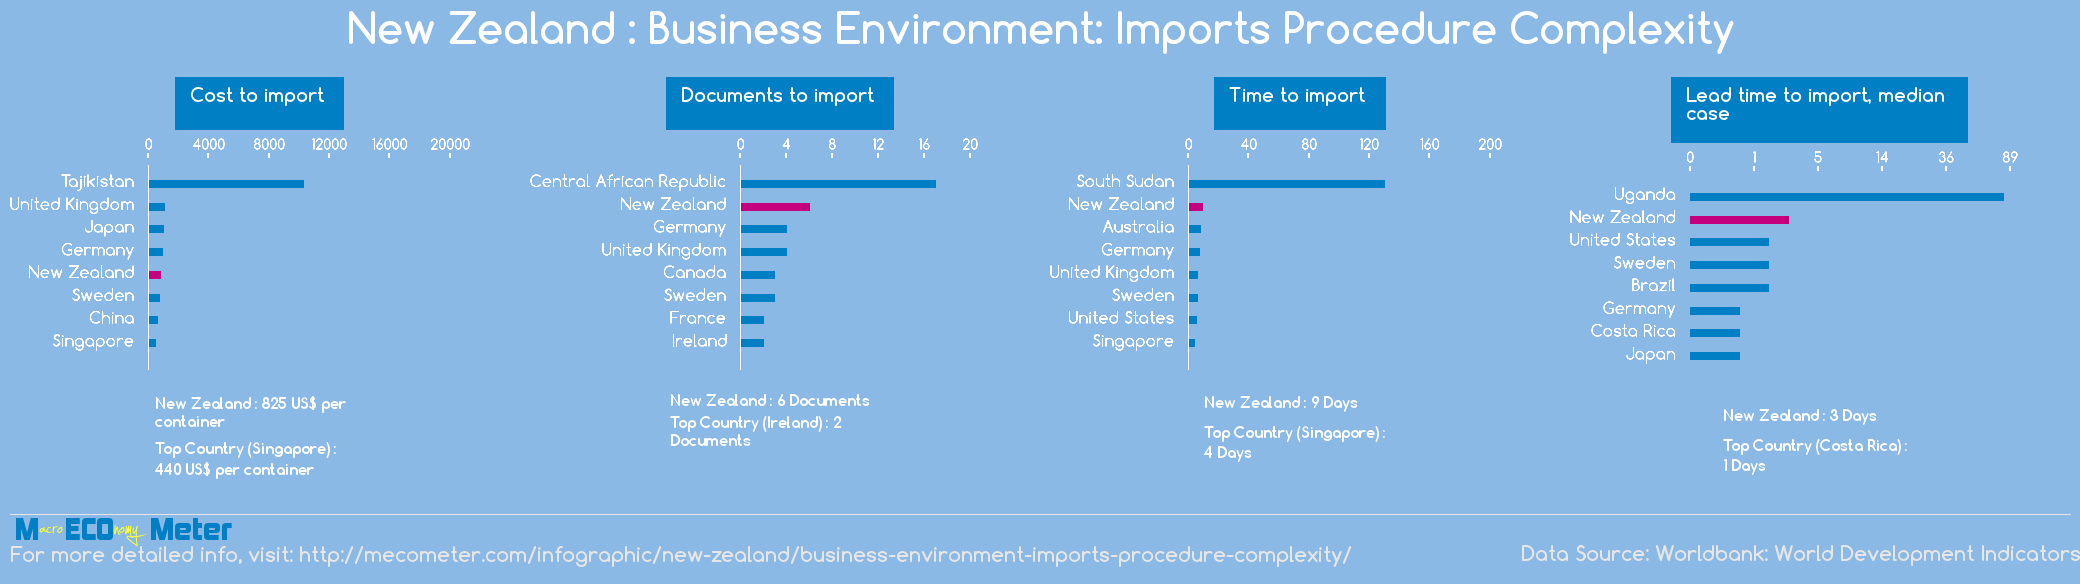 New Zealand : Business Environment: Imports Procedure Complexity